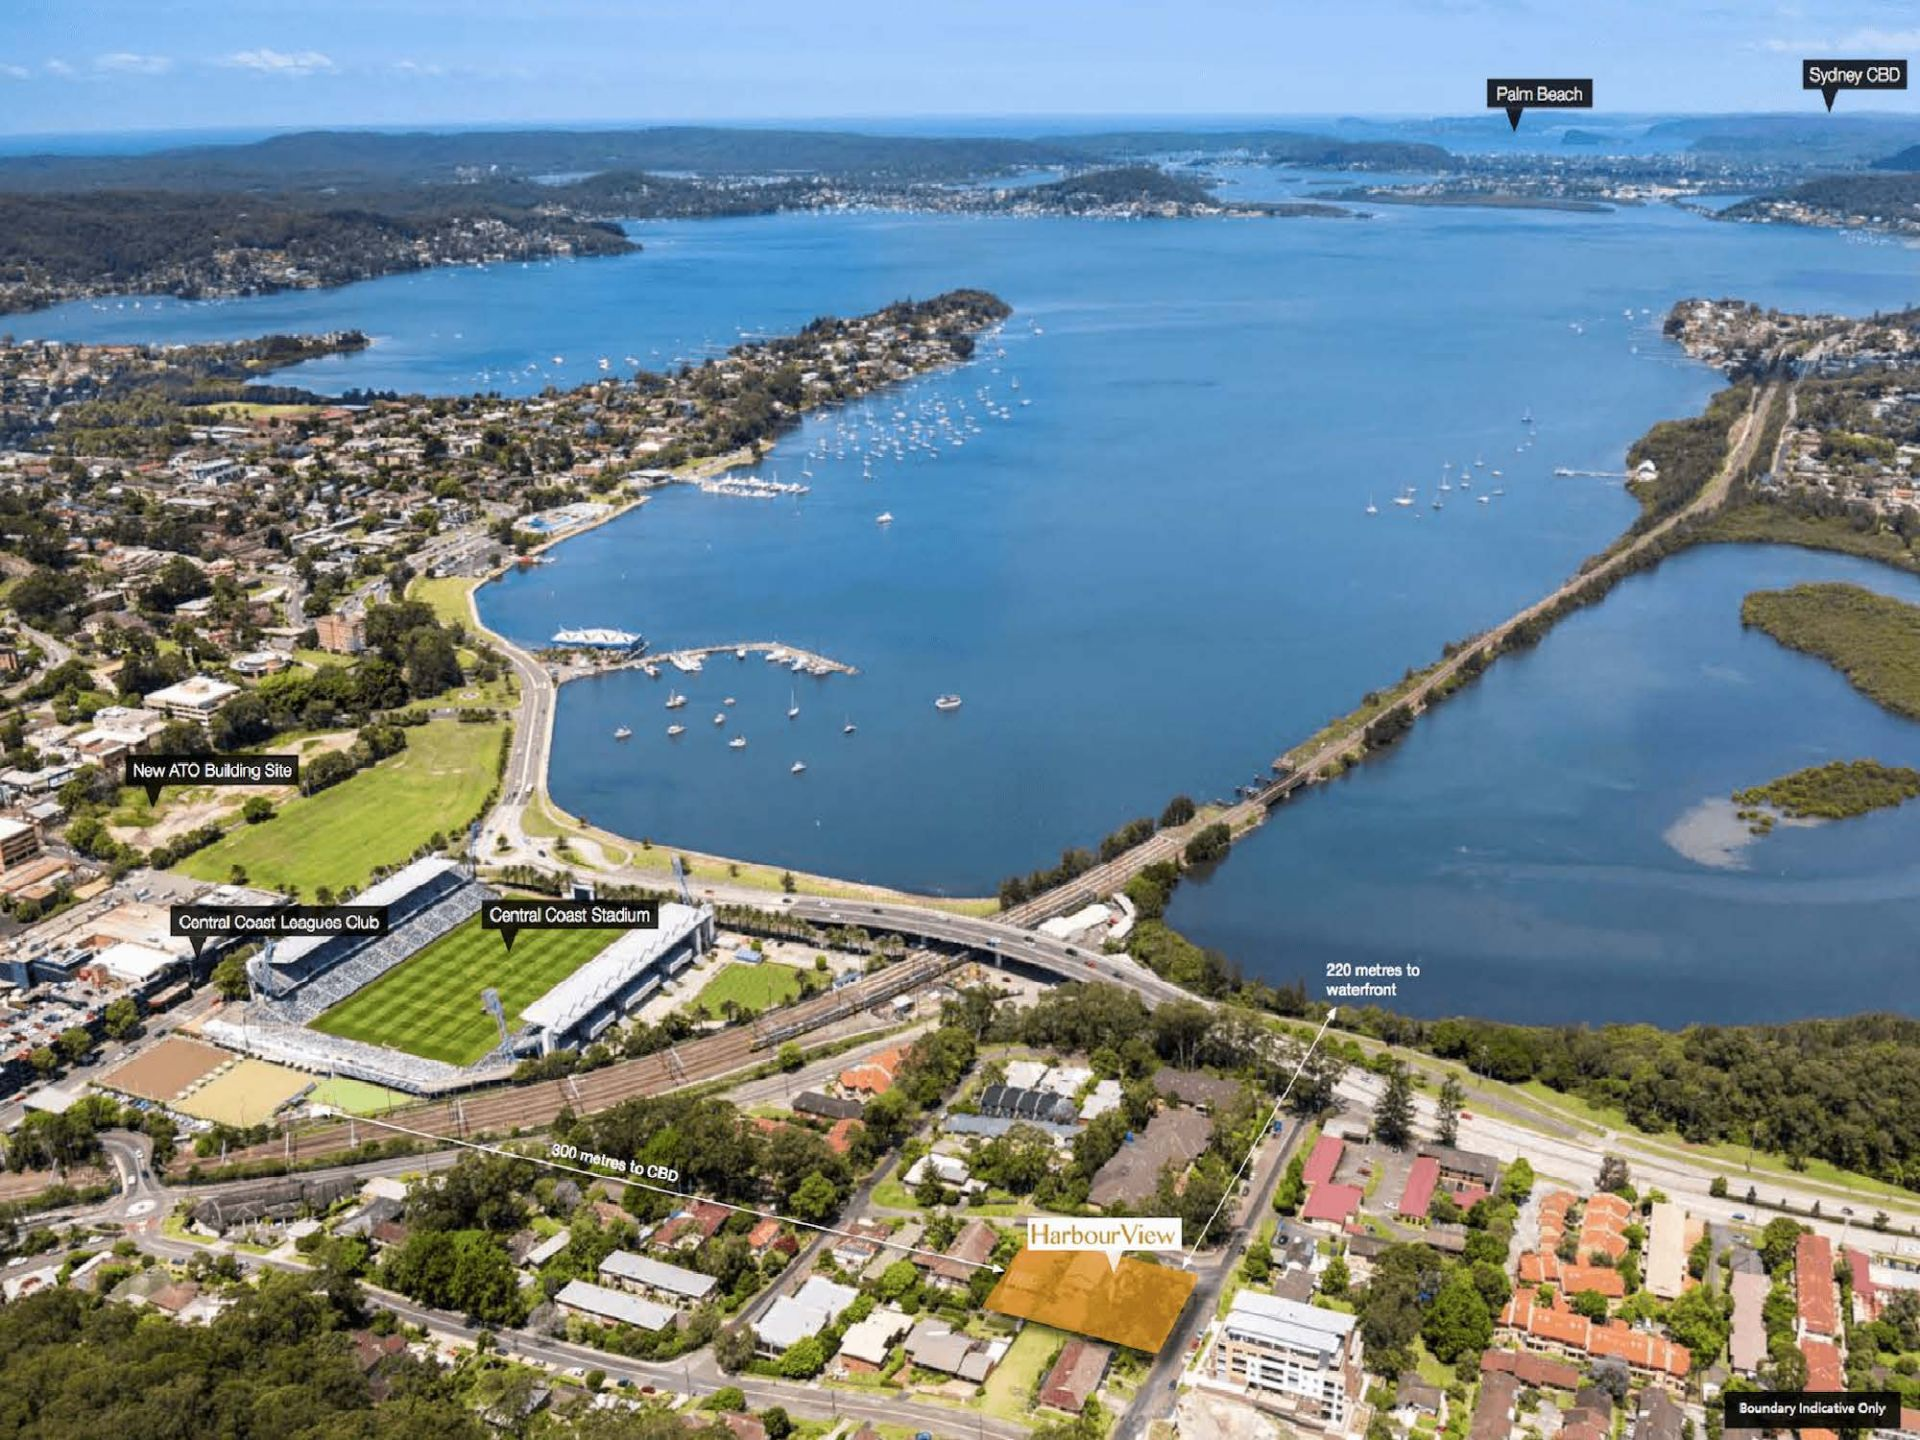 Gosford Real Estate: STUDIO APARTMENT IN PRIME LOCATION